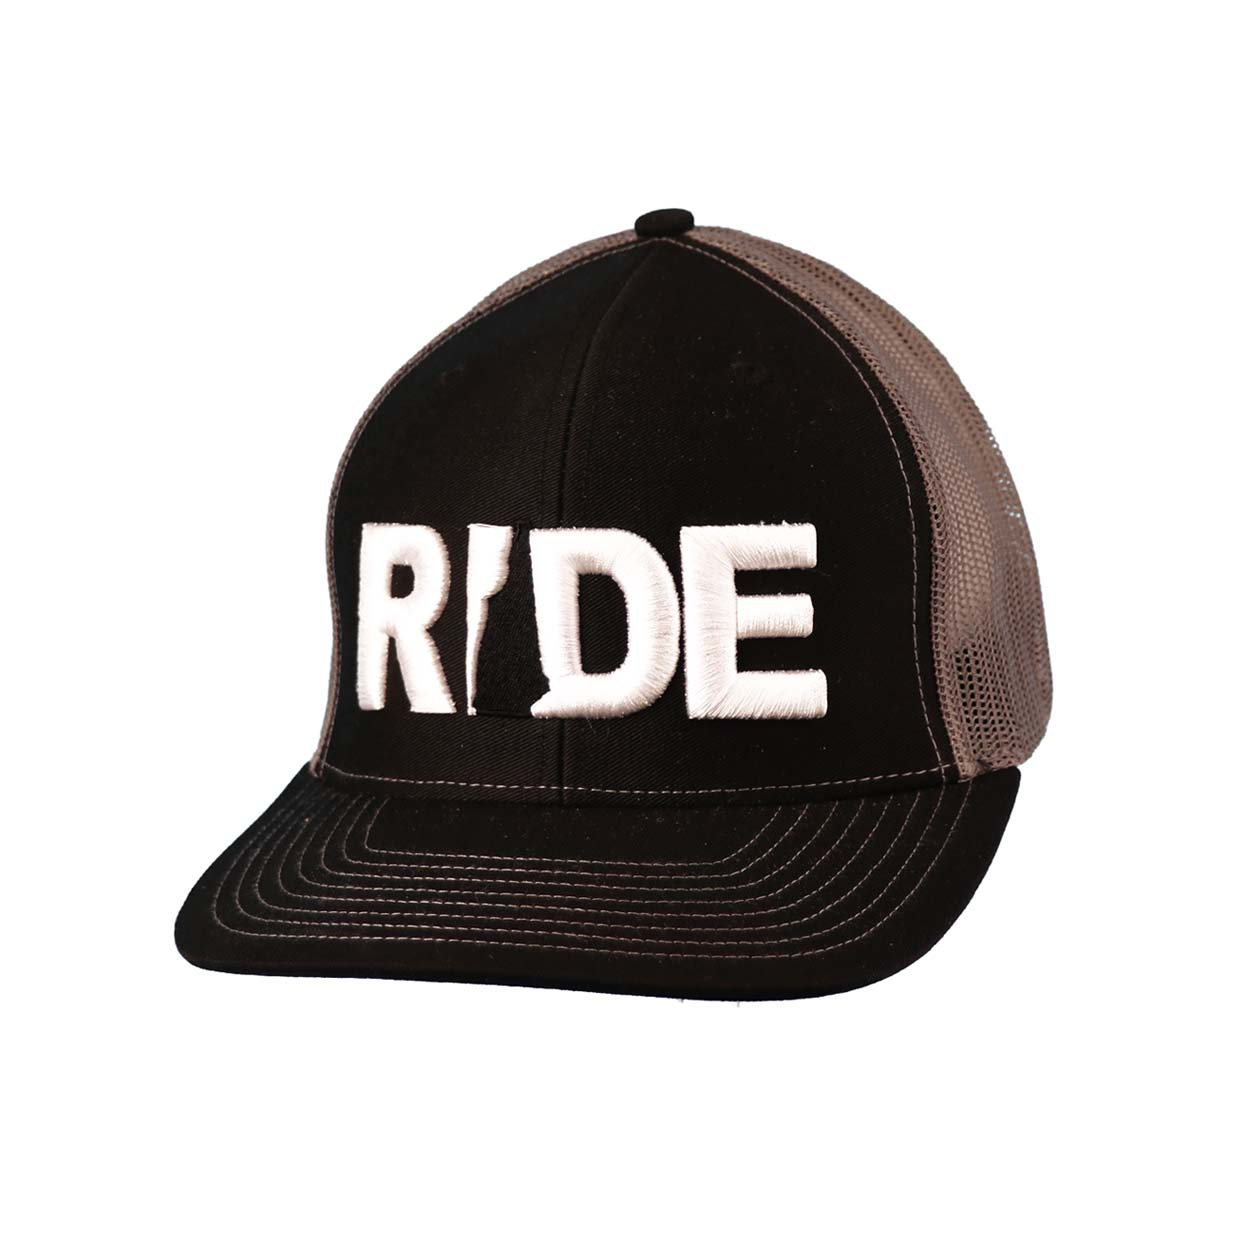 Ride New Hampshire Classic Embroidered Snapback Trucker Hat Black/White